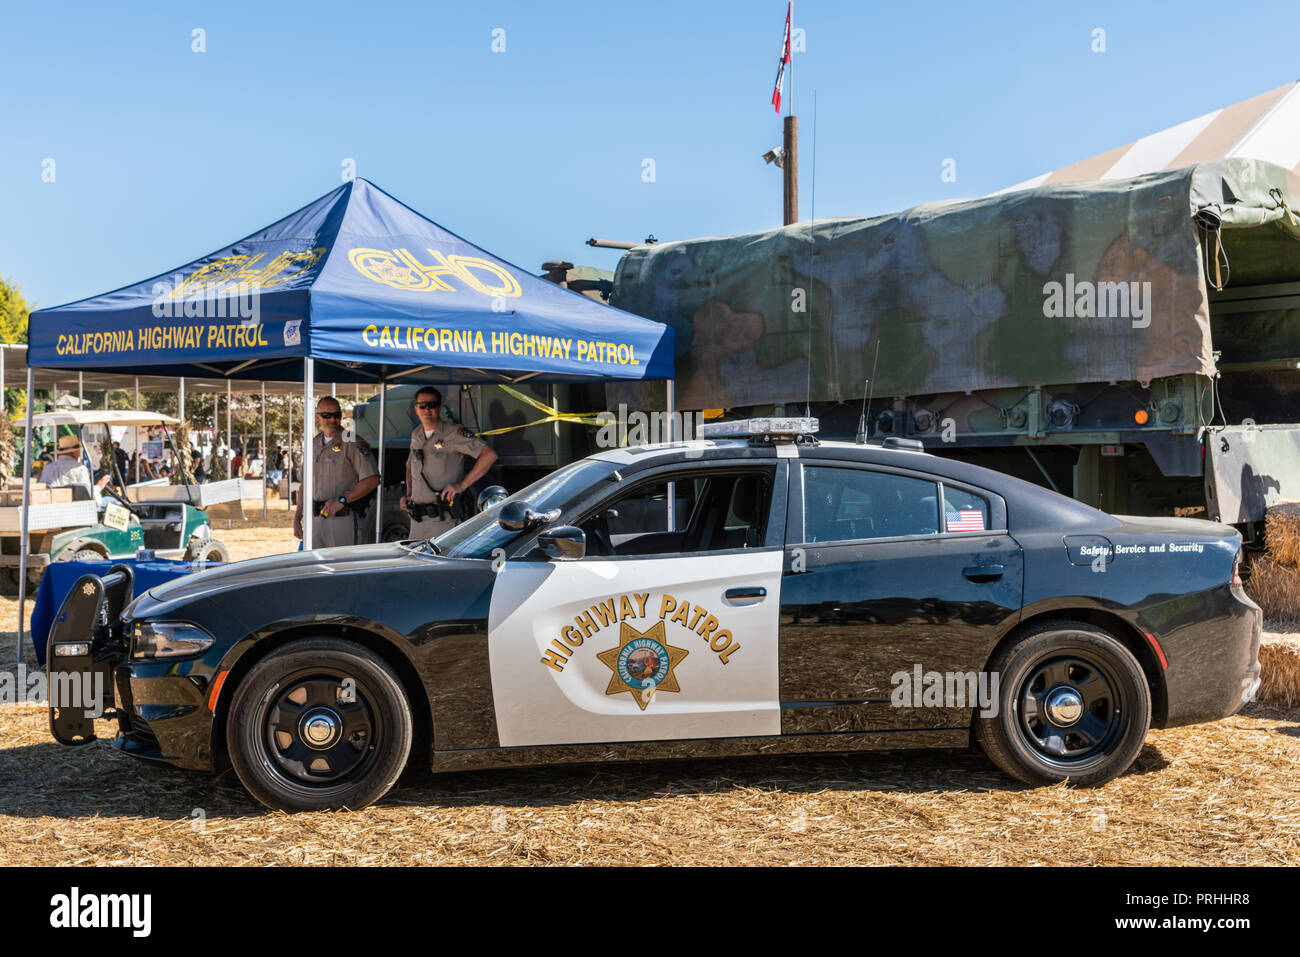 california highway patrol stock photos & california highway patrol